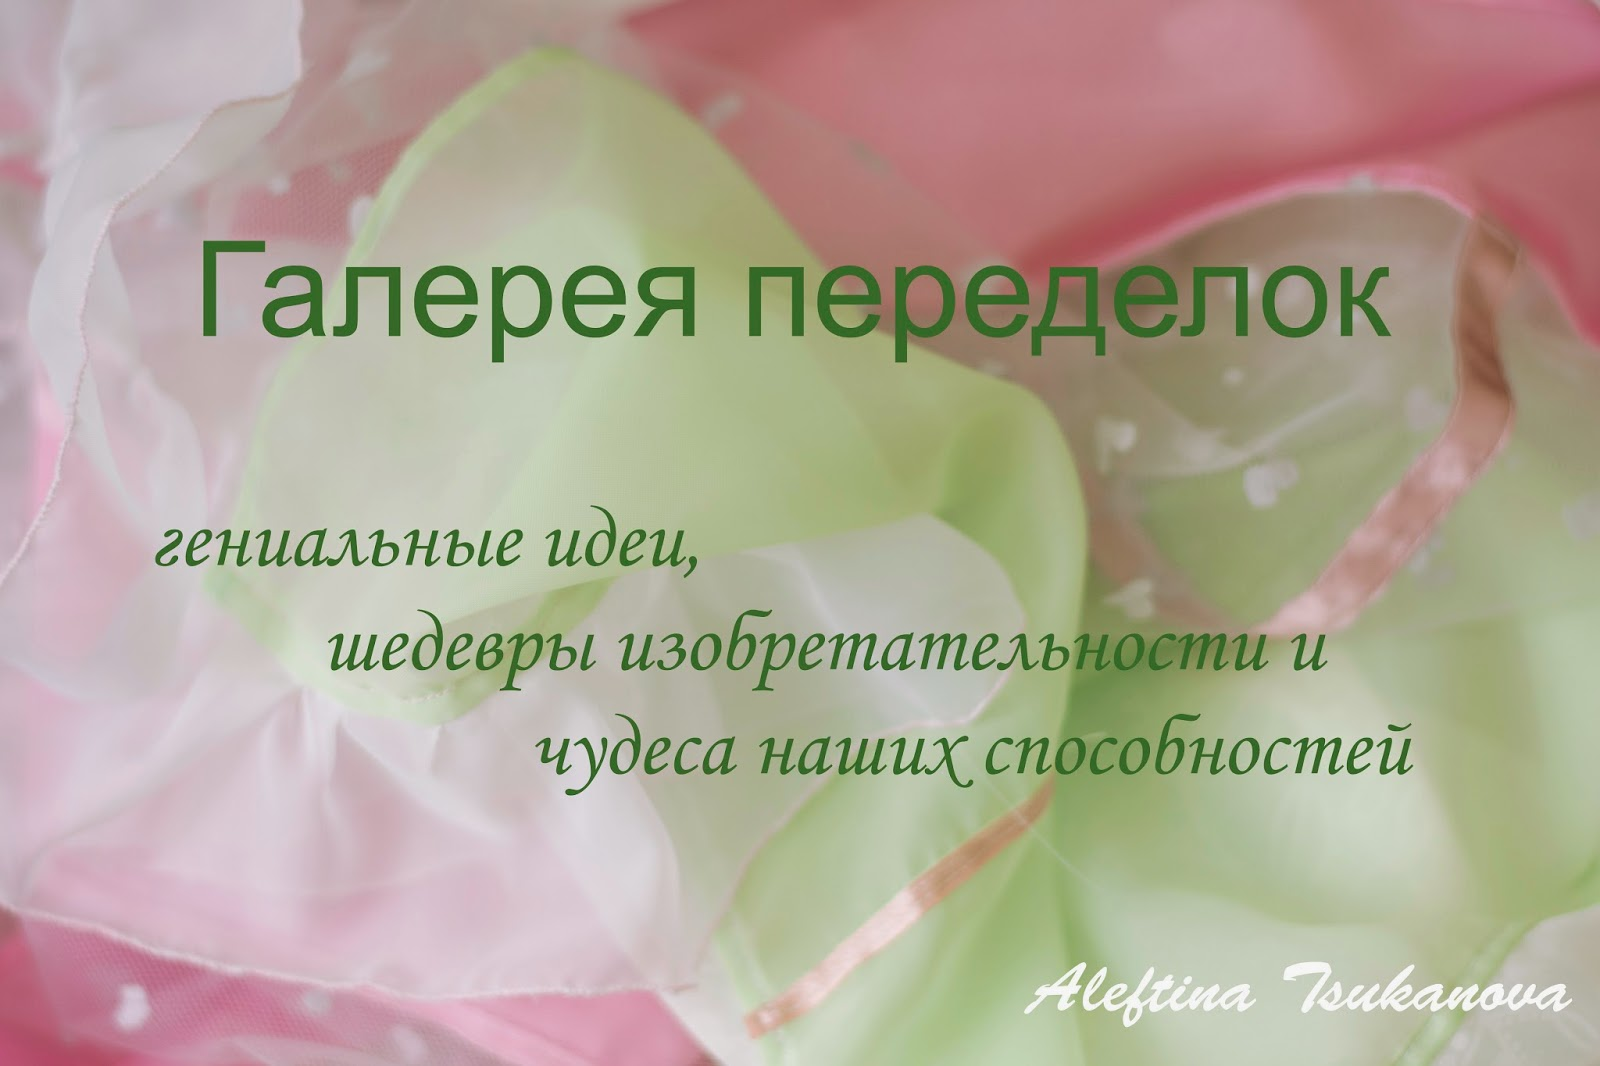 http://alin-ugolok.blogspot.ru/2015/03/blog-post_28.html